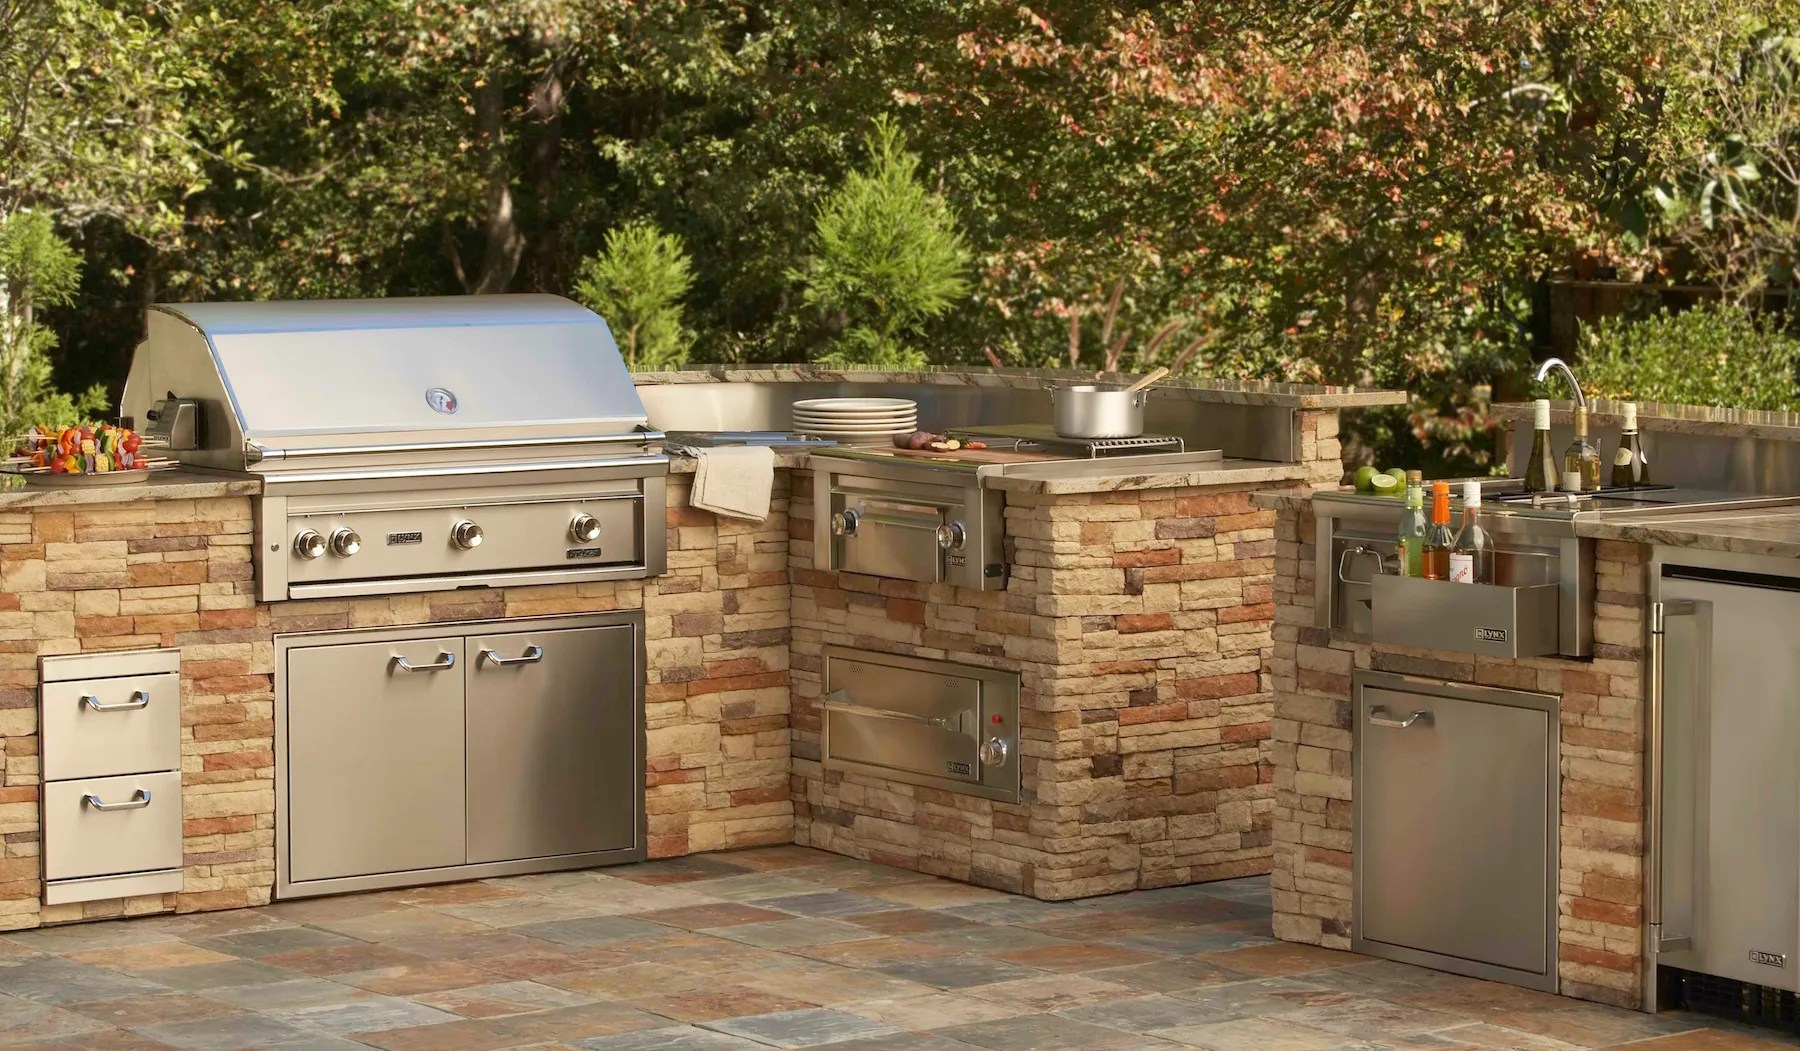 Plan Your Outdoor Kitchen - BBQ Concepts